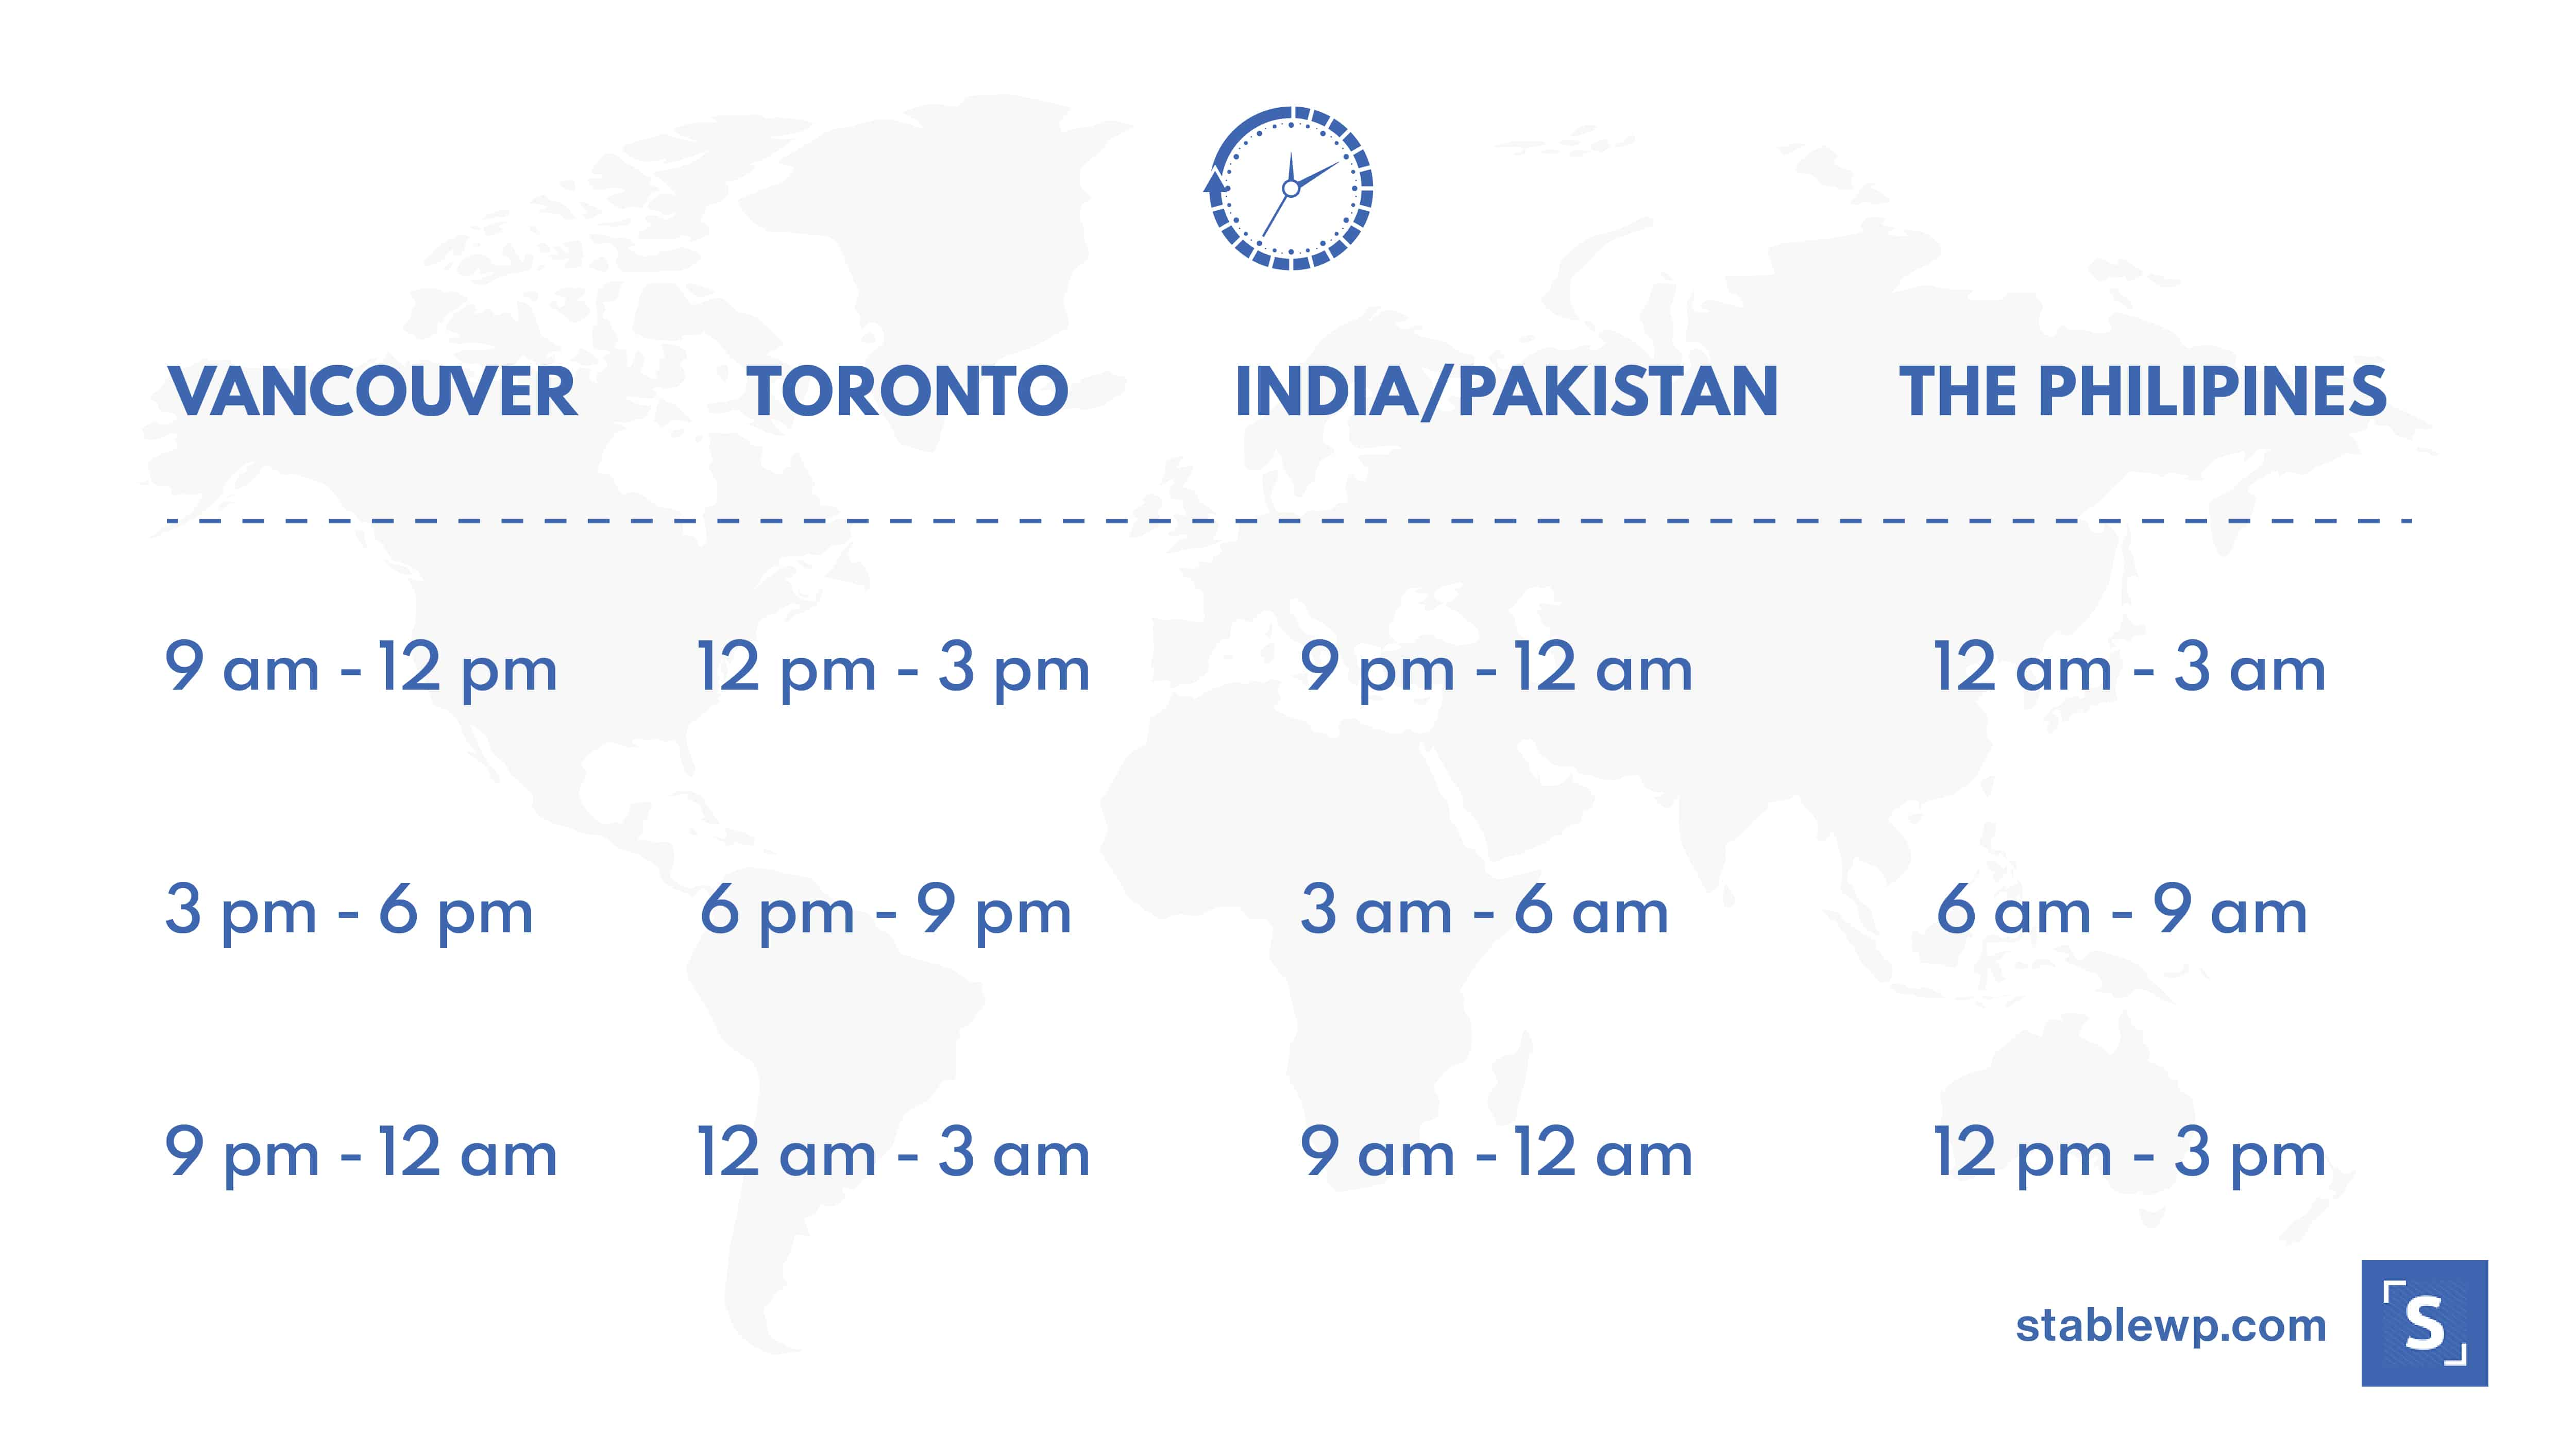 time zone differences issues with overseas outsourcing